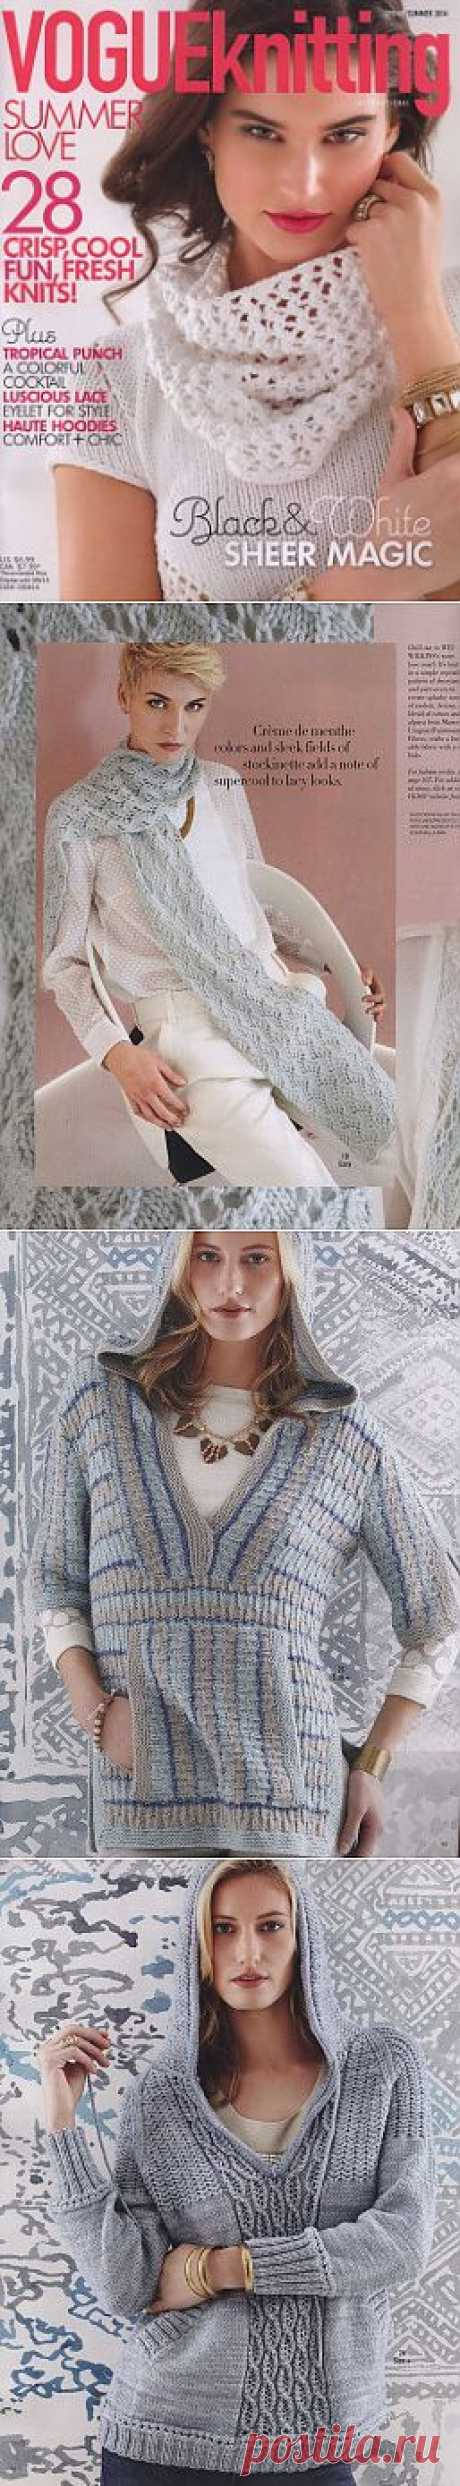 Vogue Knitting International - Spring/Summer 2014.